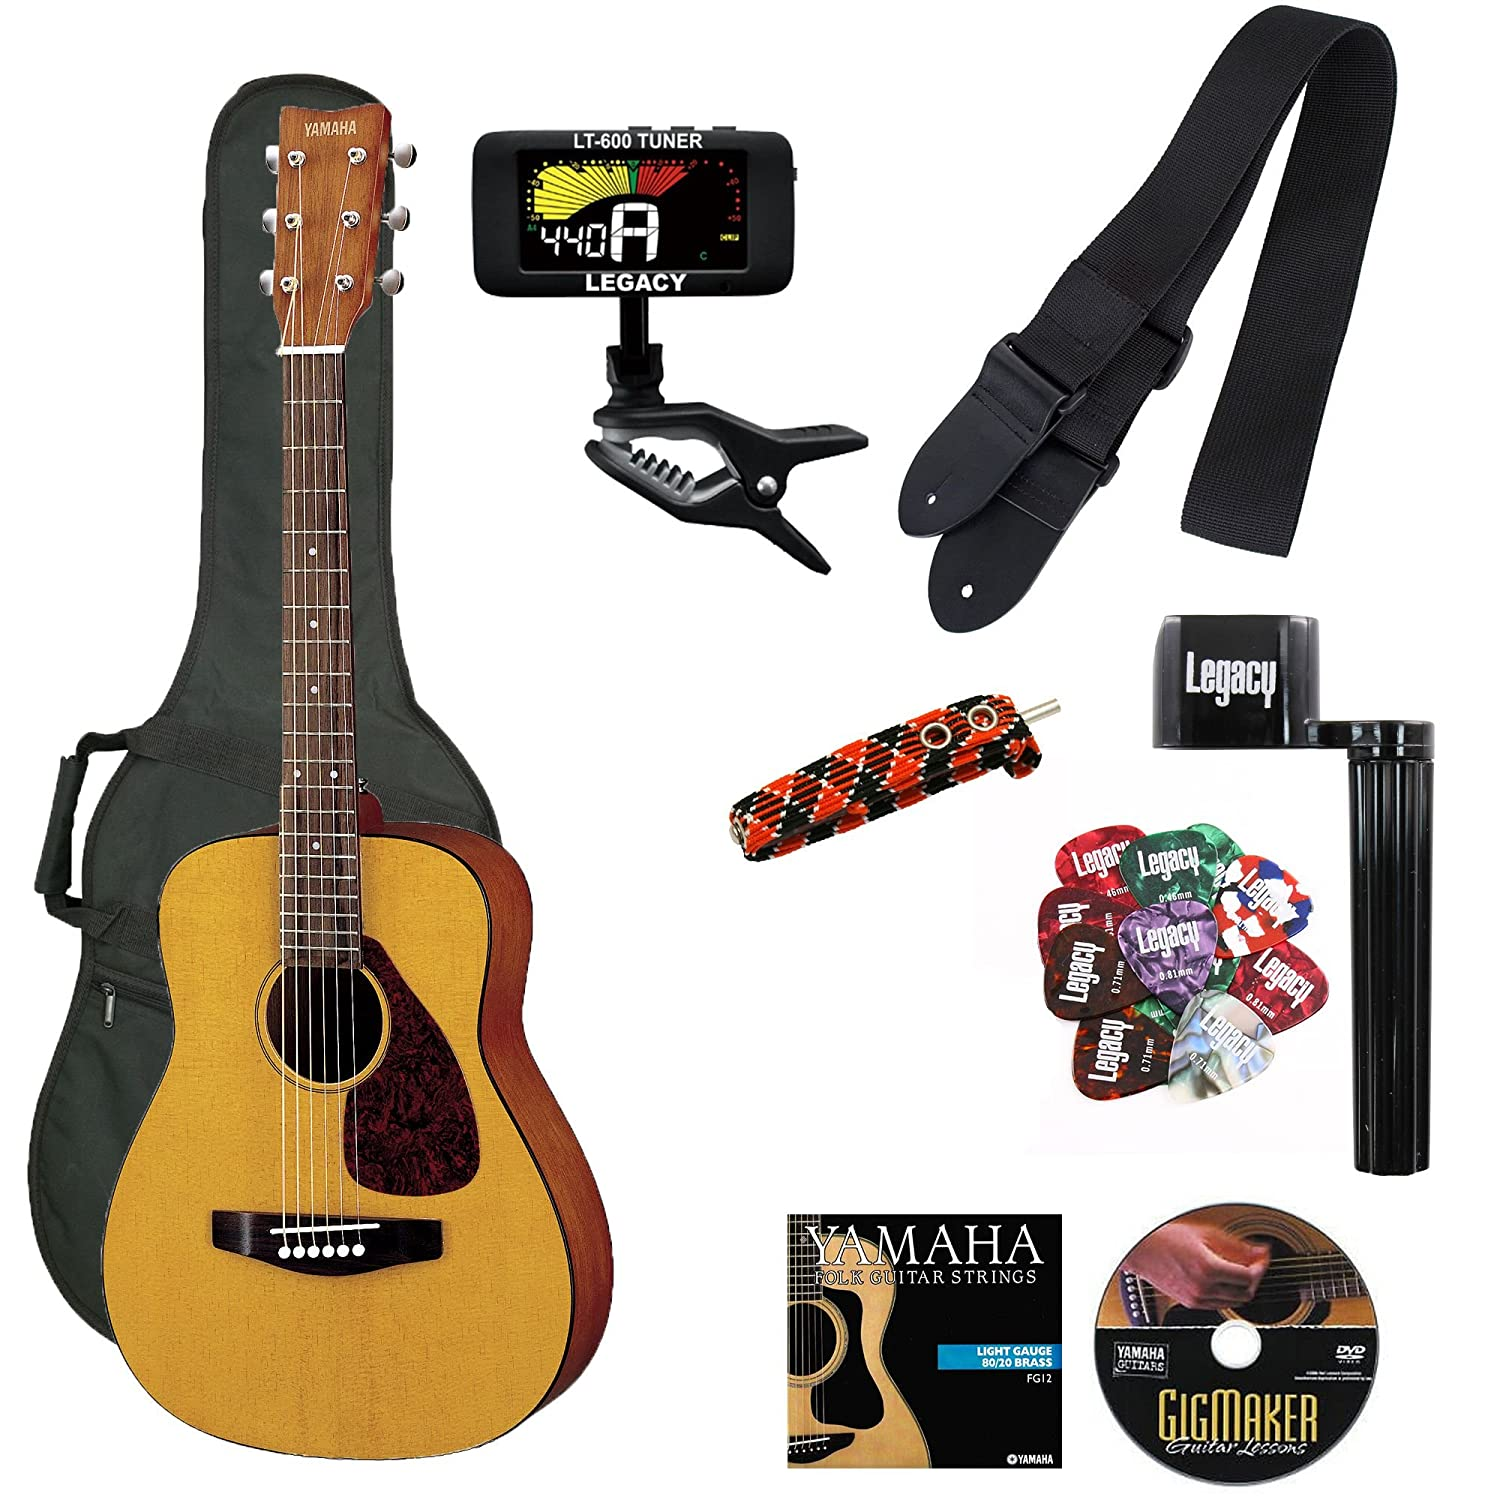 Yamaha Jr Fg Junior   Size Acoustic Guitar With Gig Bag And Legacy Accessory